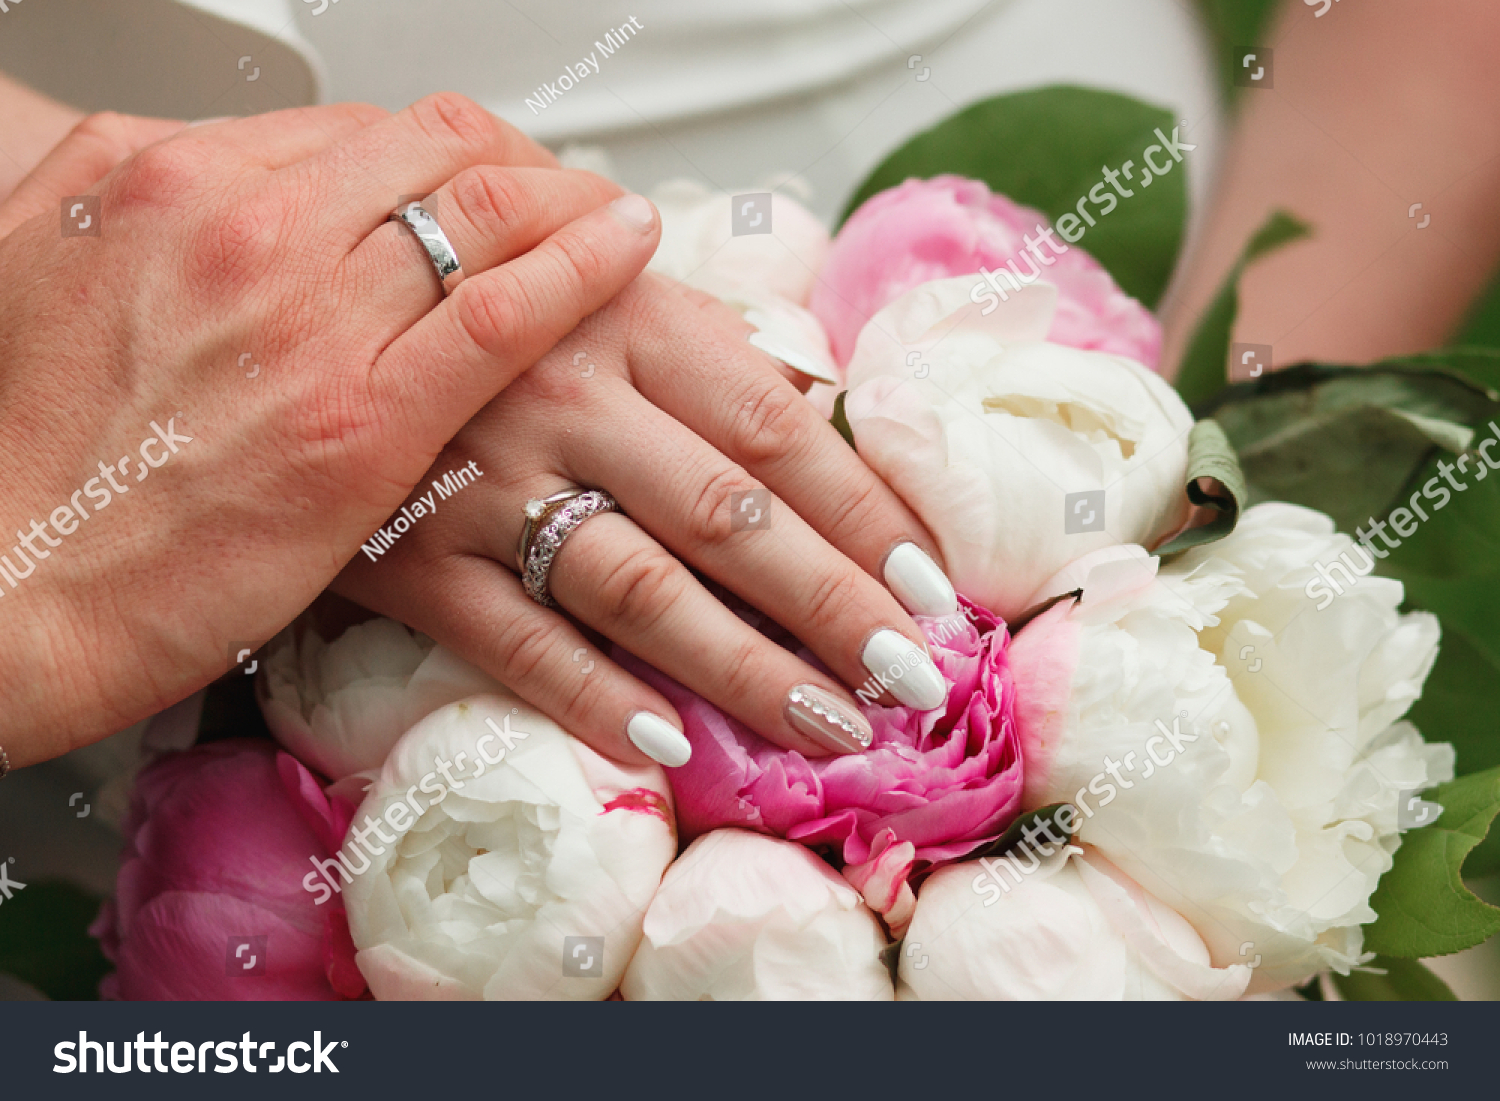 Couples hands wearing their wedding rings resting on the wedding bouqet #1018970443